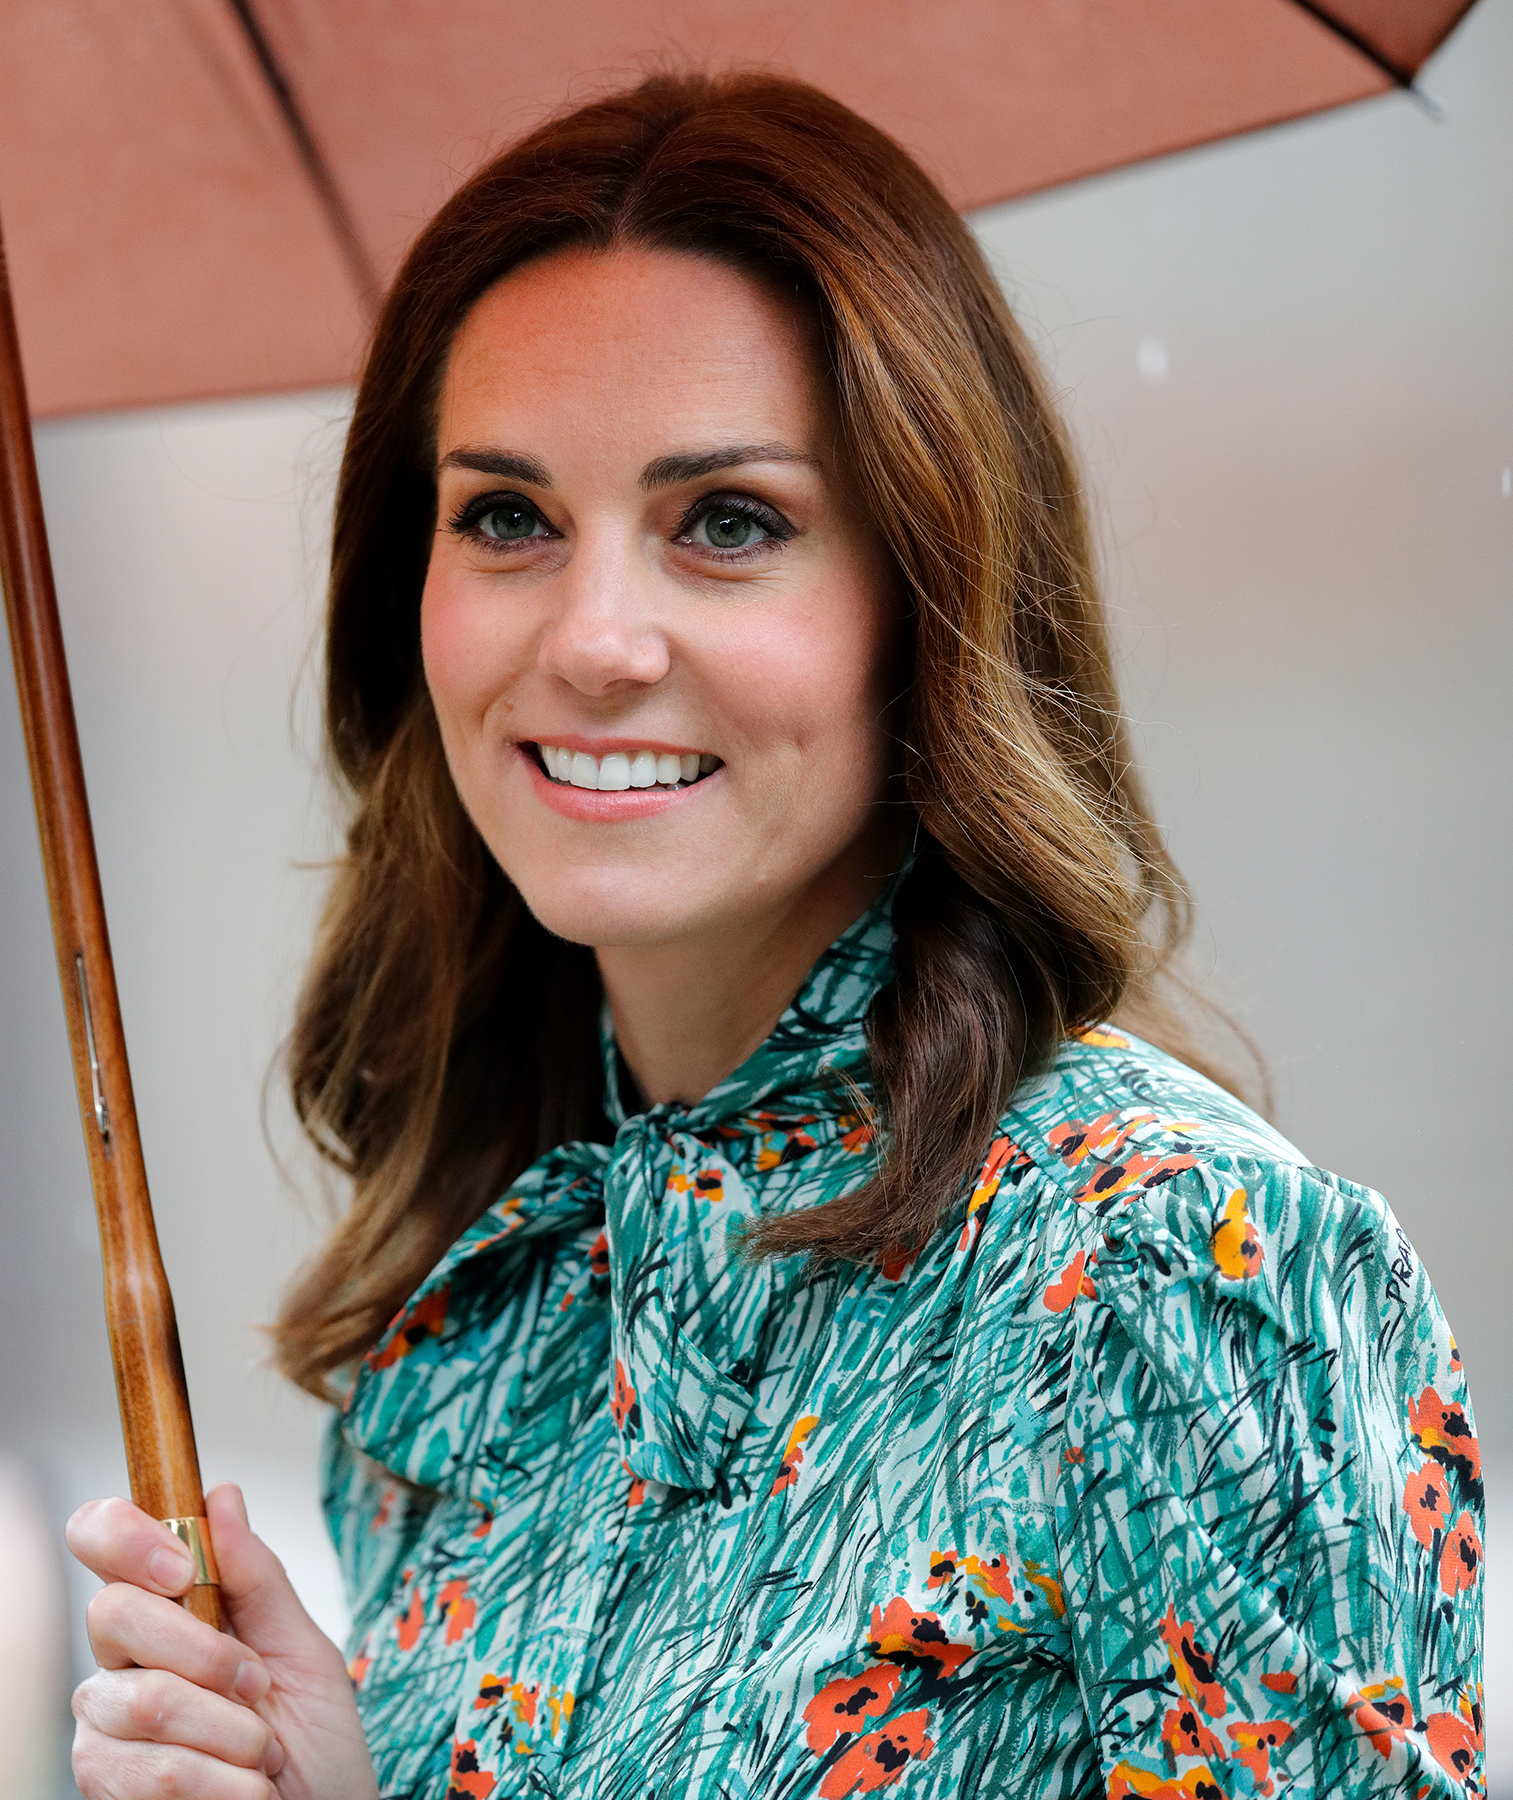 Kate Middleton Has Best Response When Little Girl Asks Why She Didn't Wear 'Princess Elsa Dress'